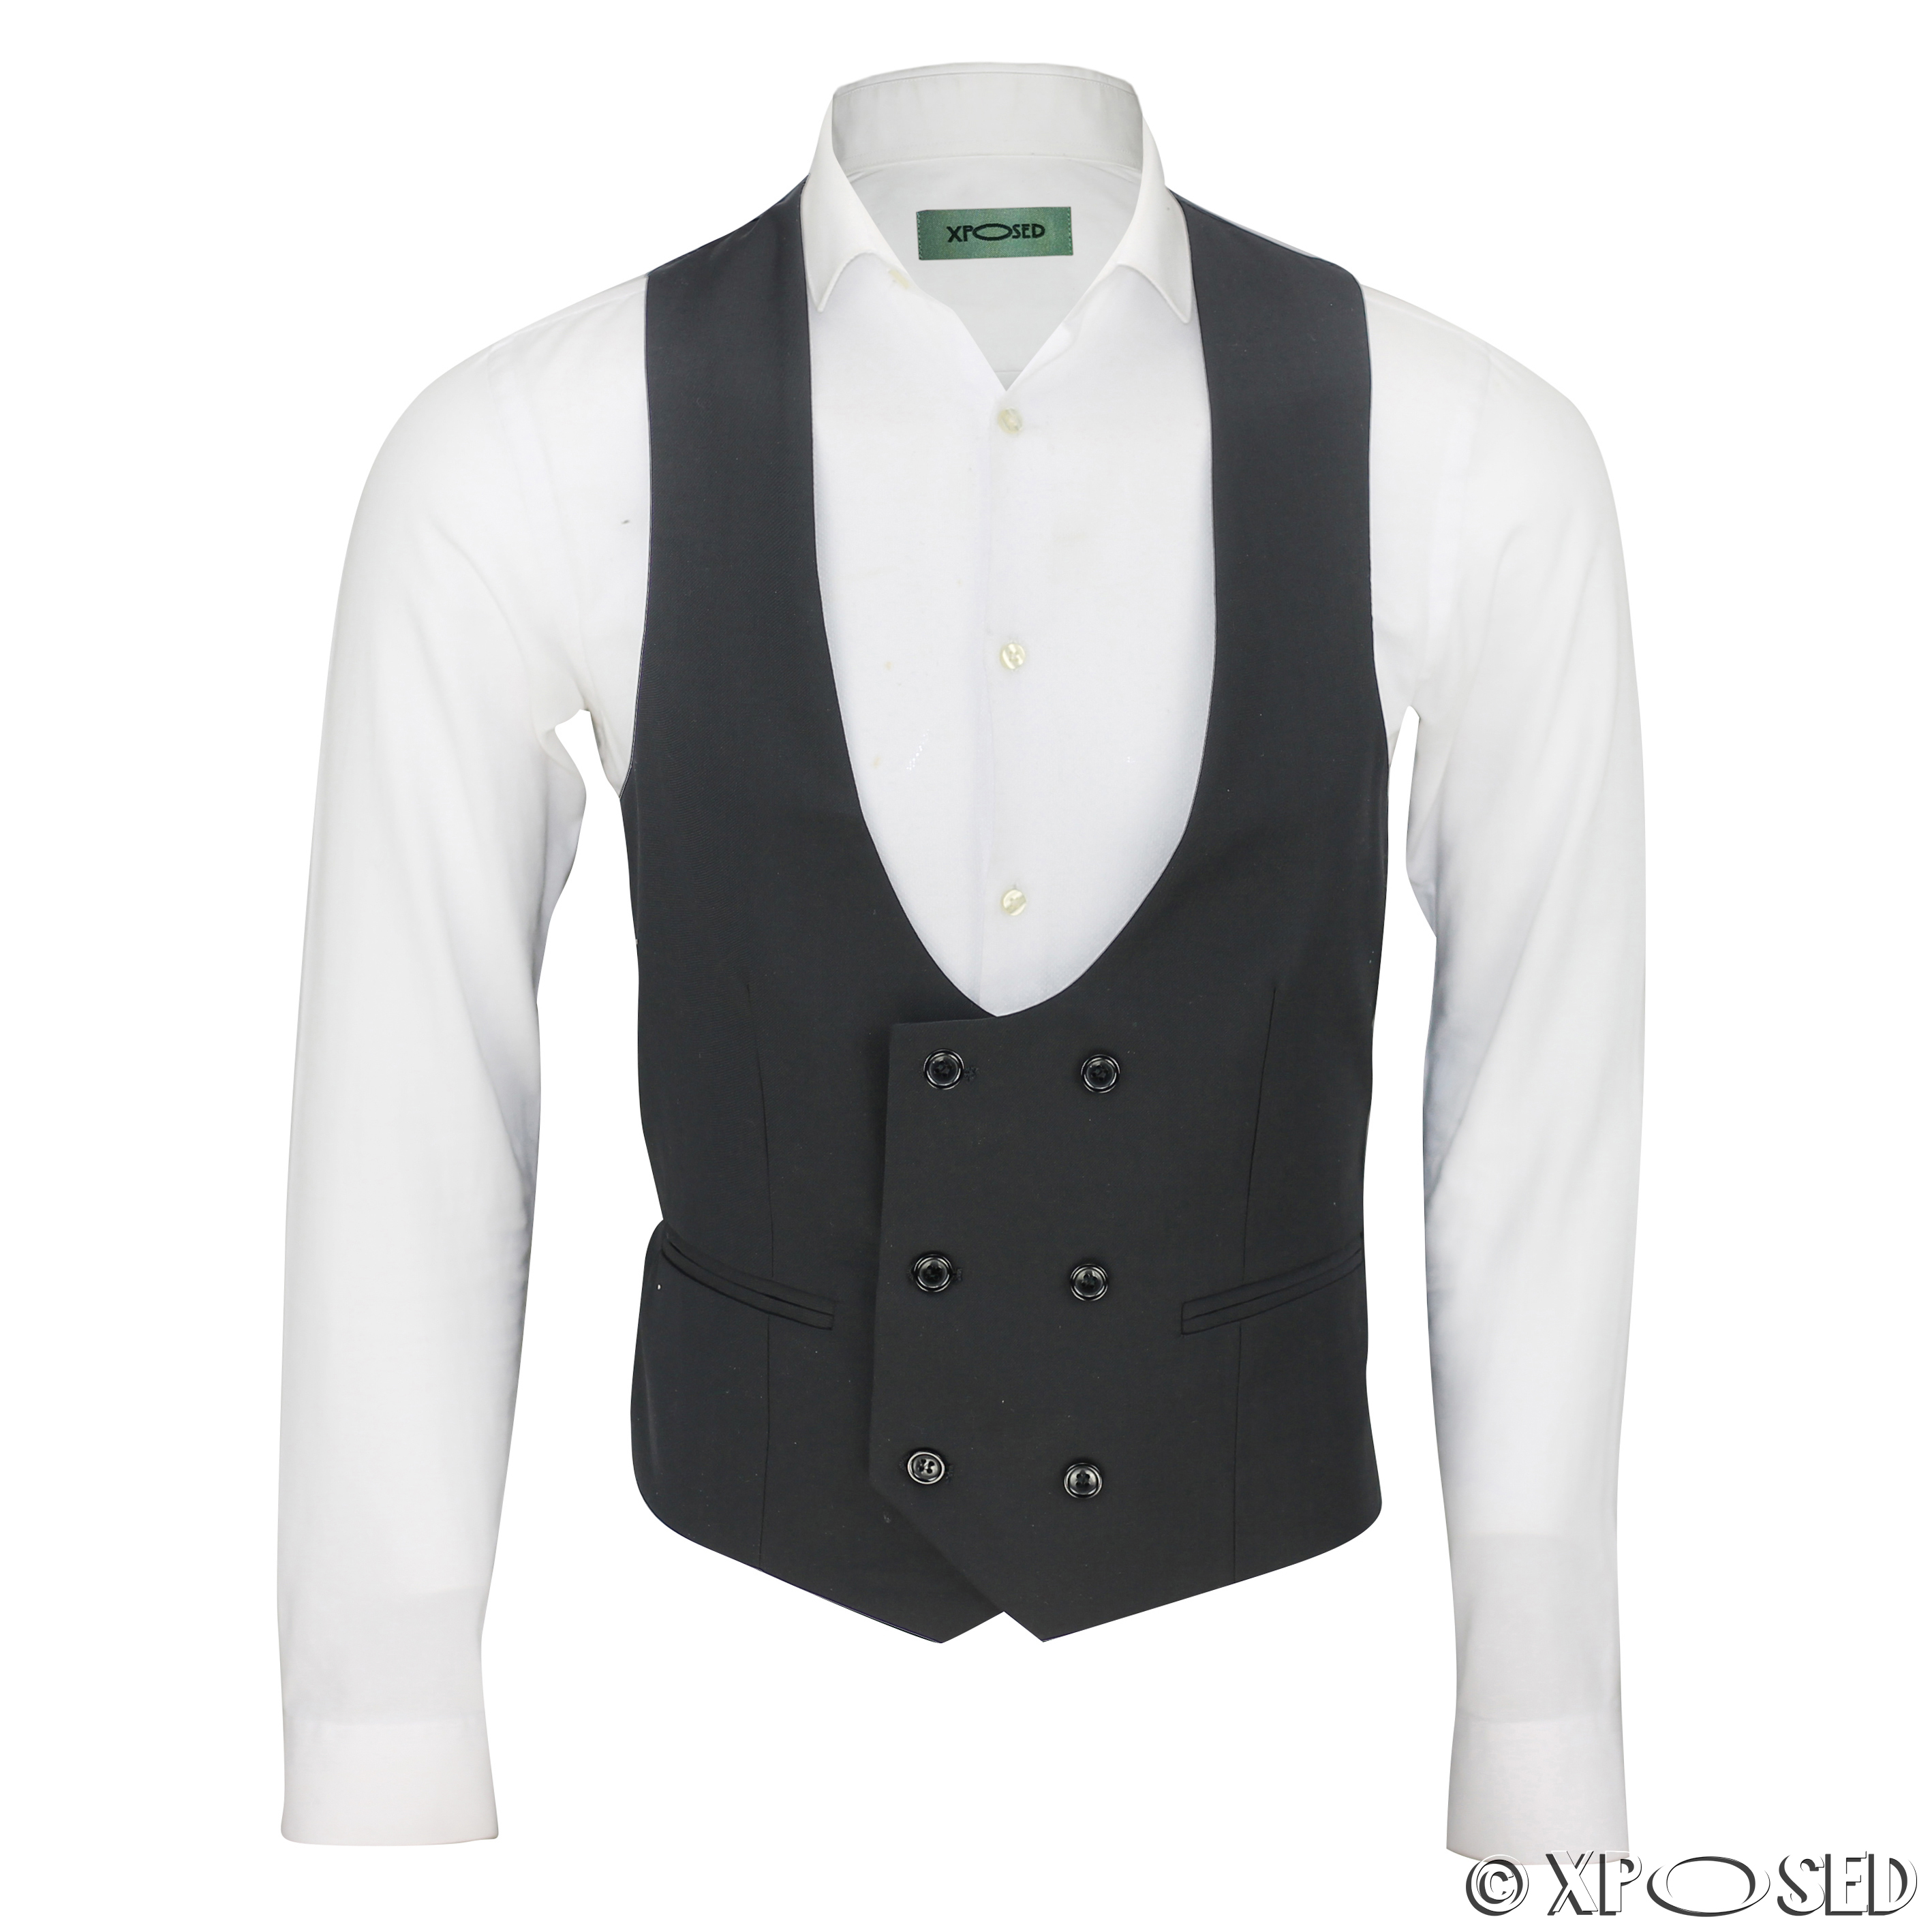 Buy White Low Cut Satin Backless Tuxedo Vest & Bow Tie - 3 Button Front - 2X-Large and other Vests at dolcehouse.ml Our wide selection is elegible for free shipping and free returns.